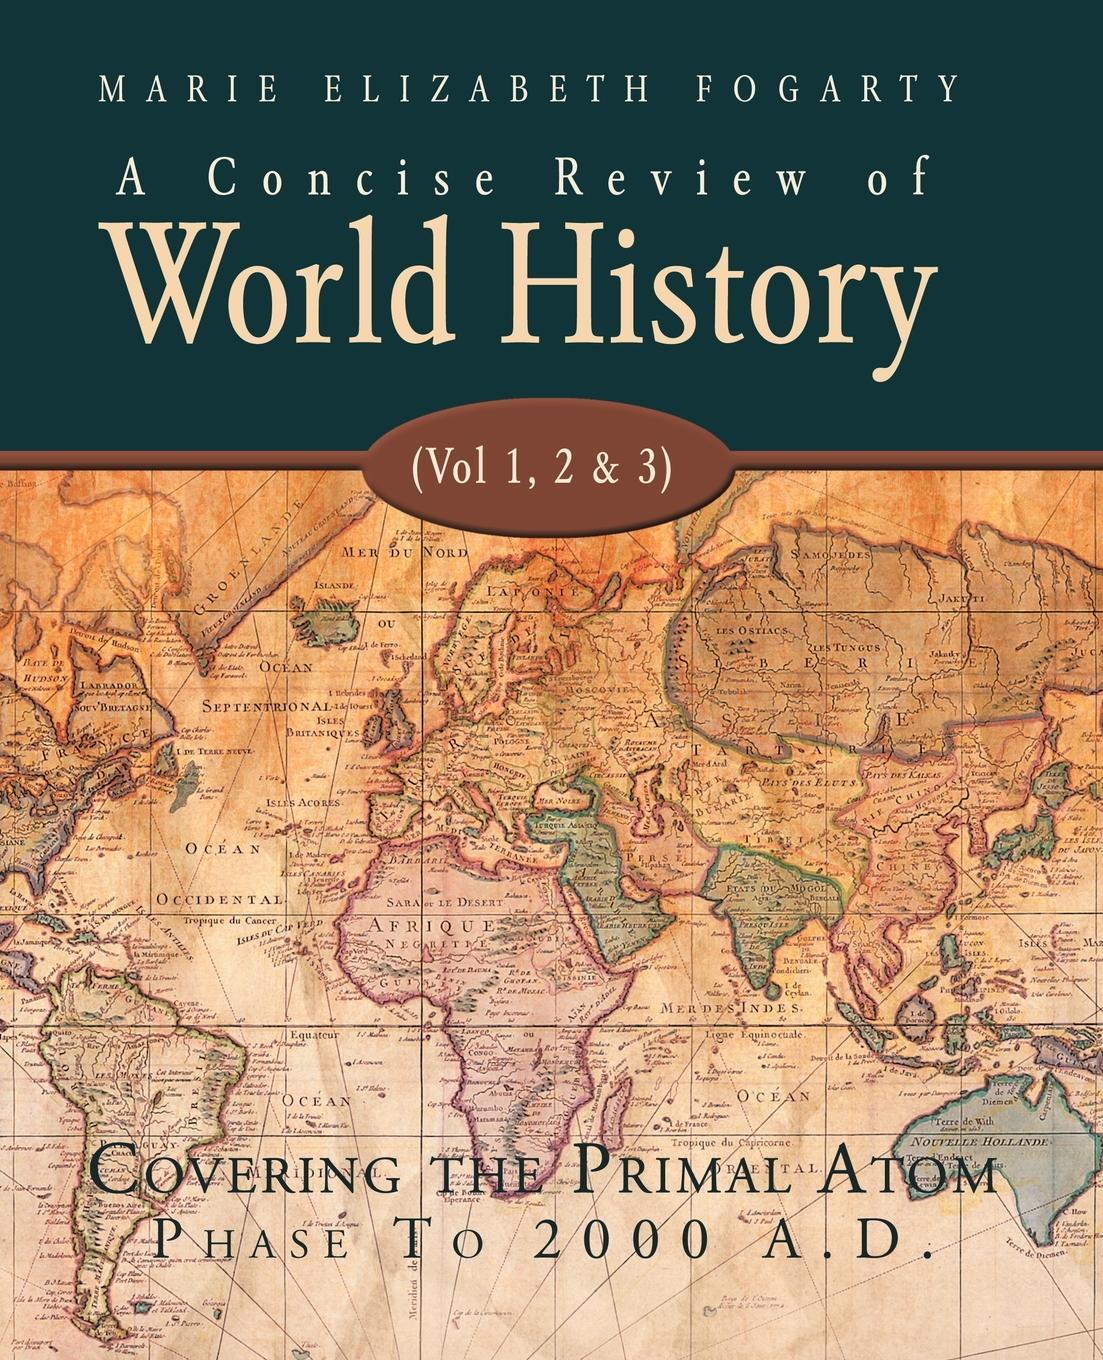 A Concise Review of World History (Vol 1, 2 & 3): Covering the Primal Atom Phase To 2000 A.D. EB9781425127572